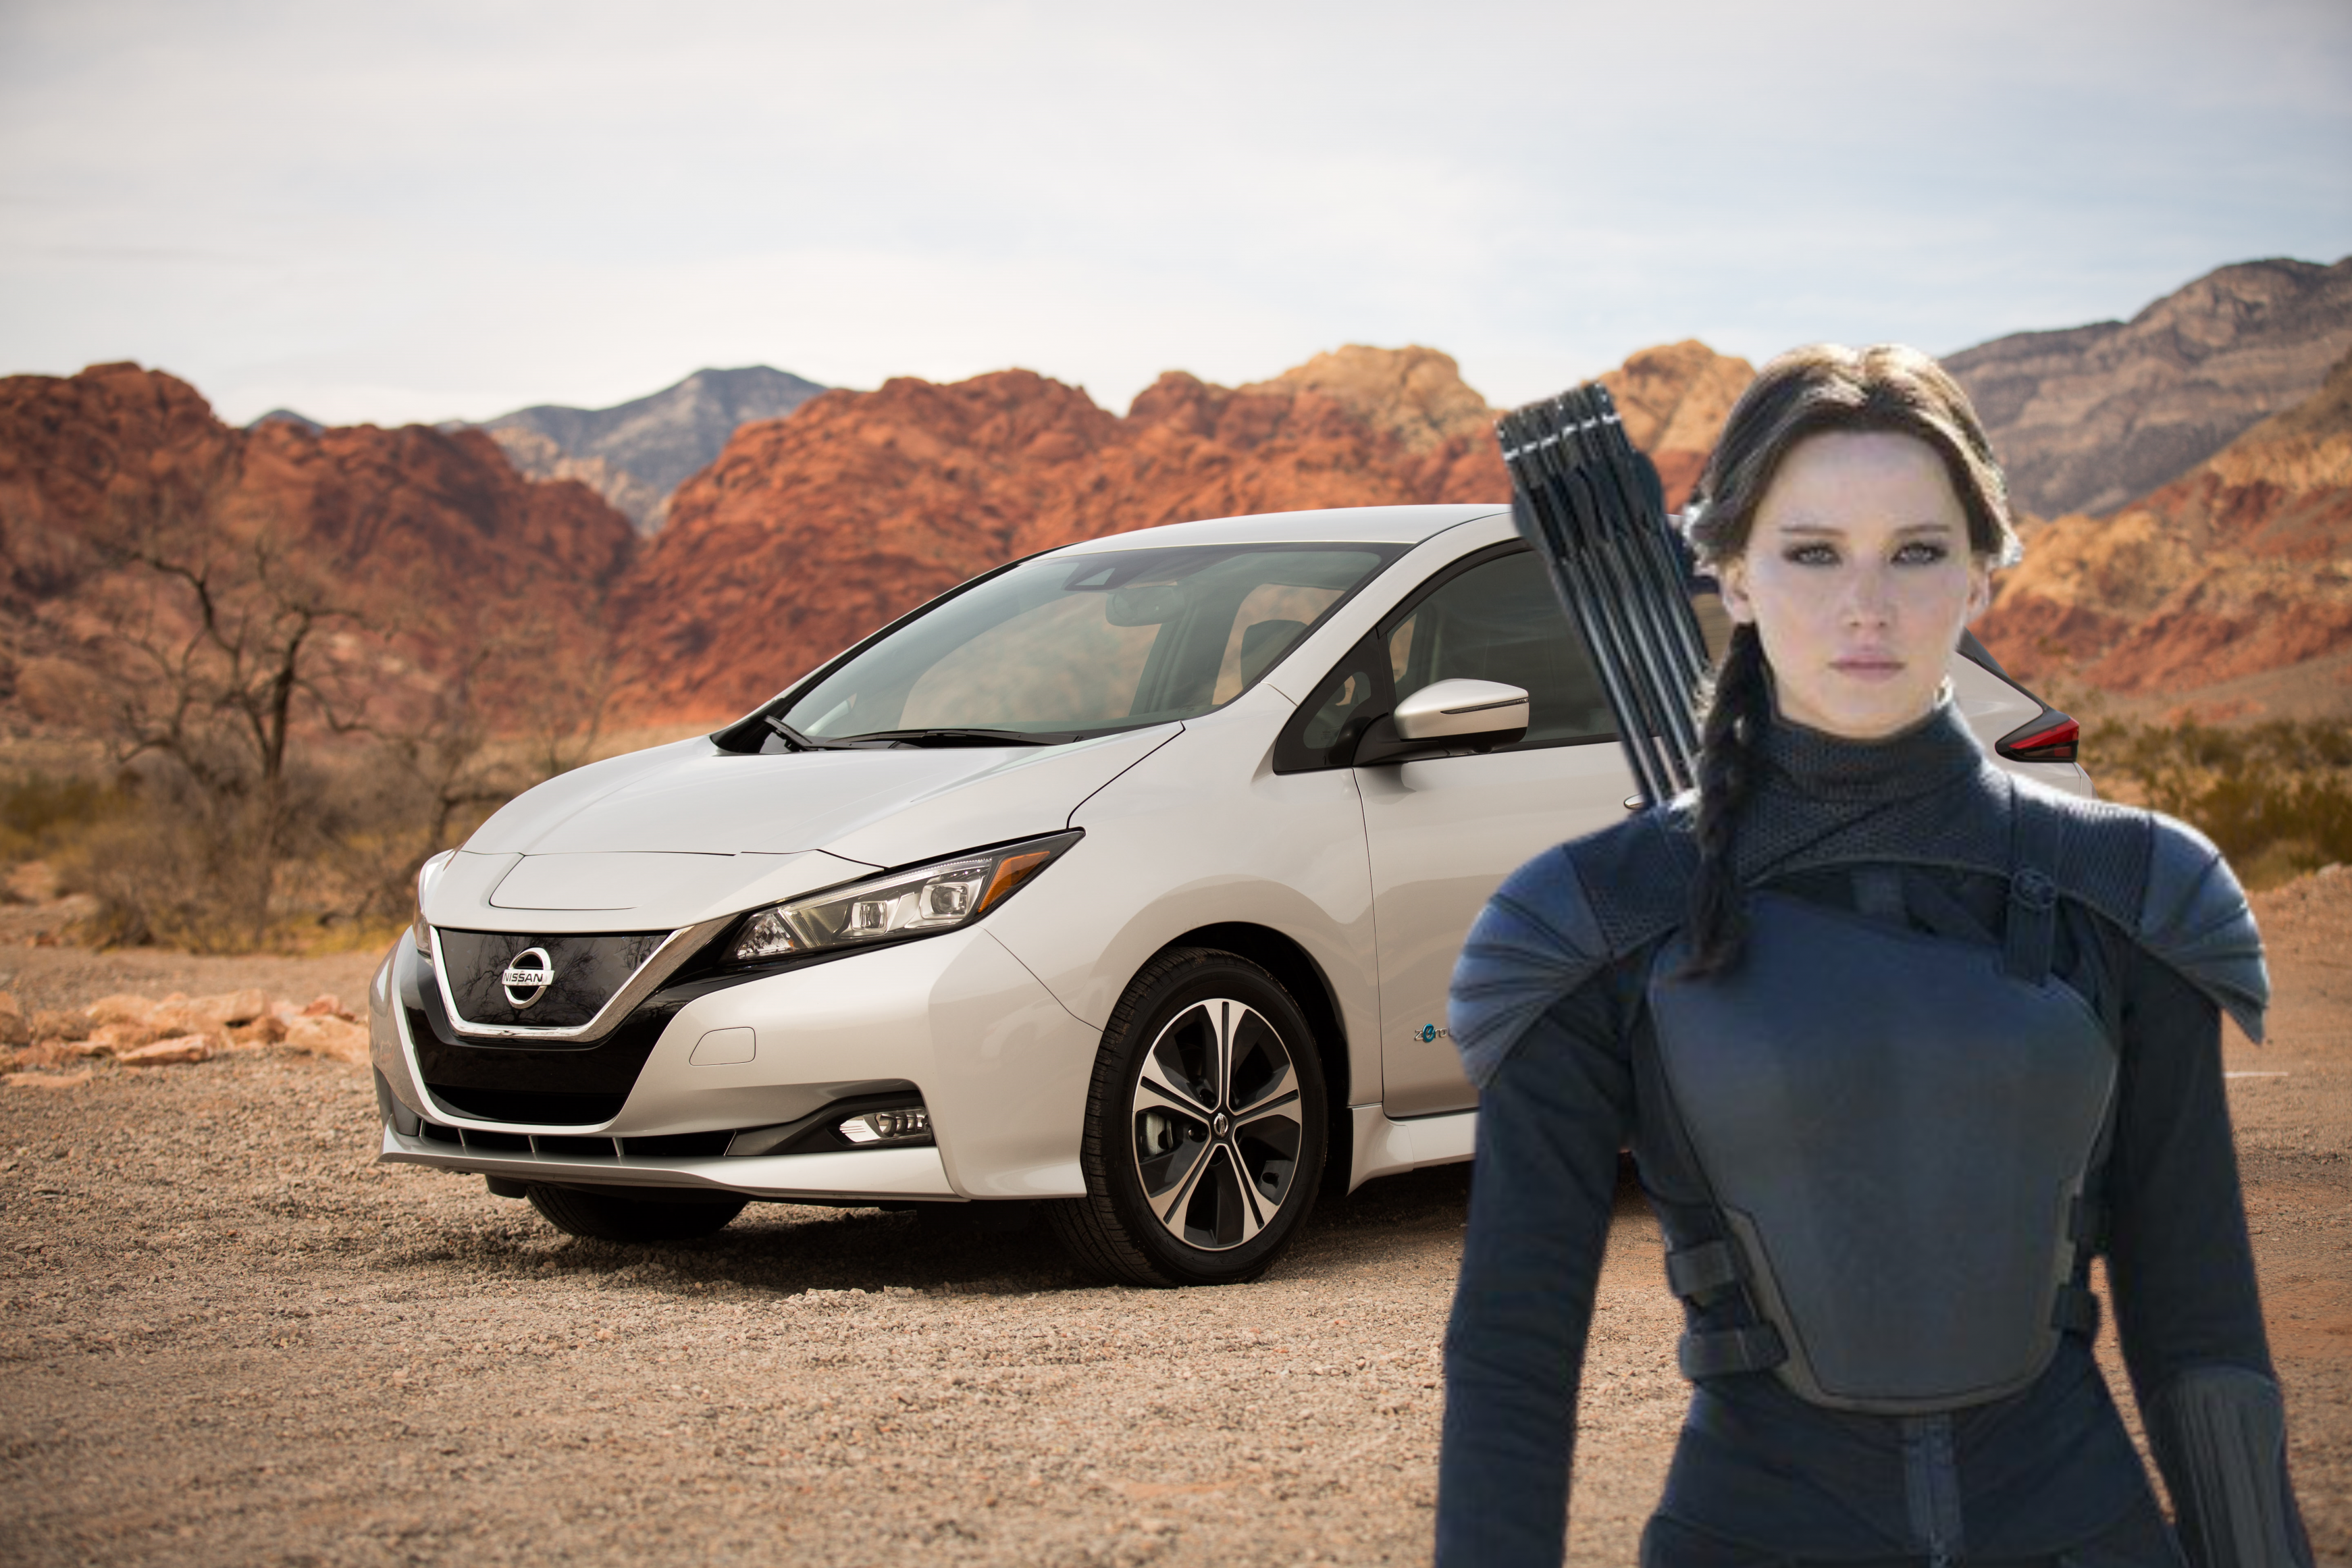 katniss everdeen with a nissan leaf